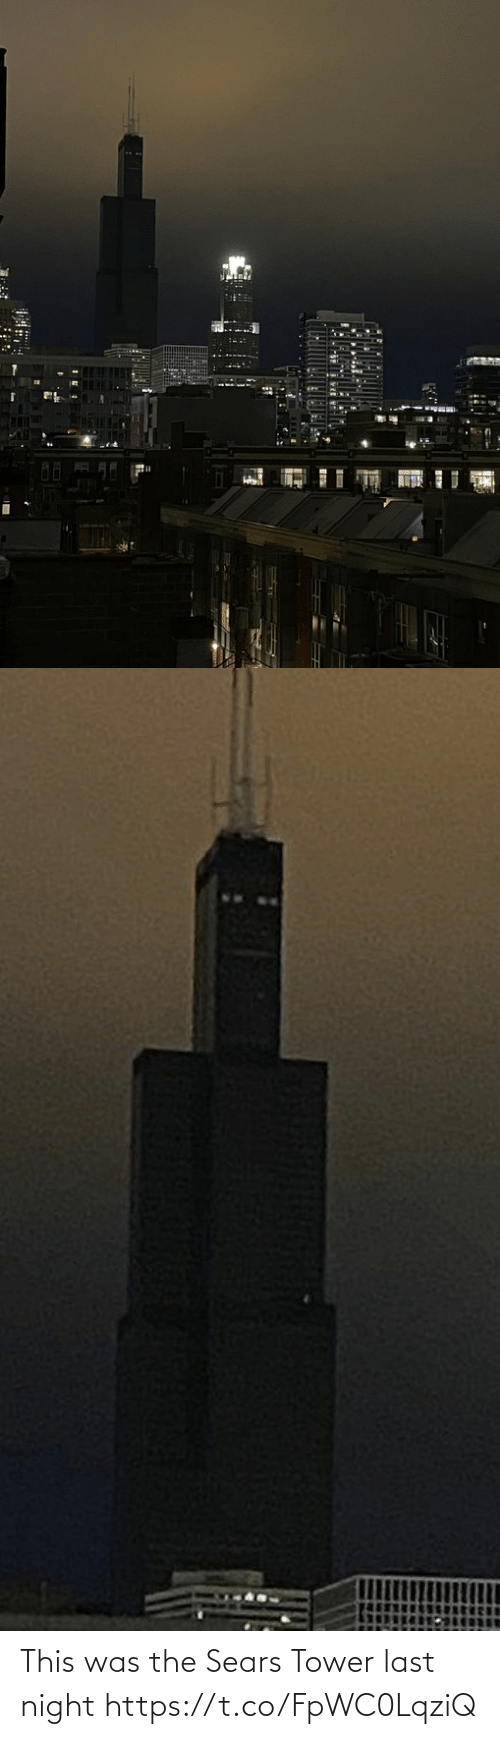 Sears, Faces-In-Things, and Sears Tower: This was the Sears Tower last night https://t.co/FpWC0LqziQ